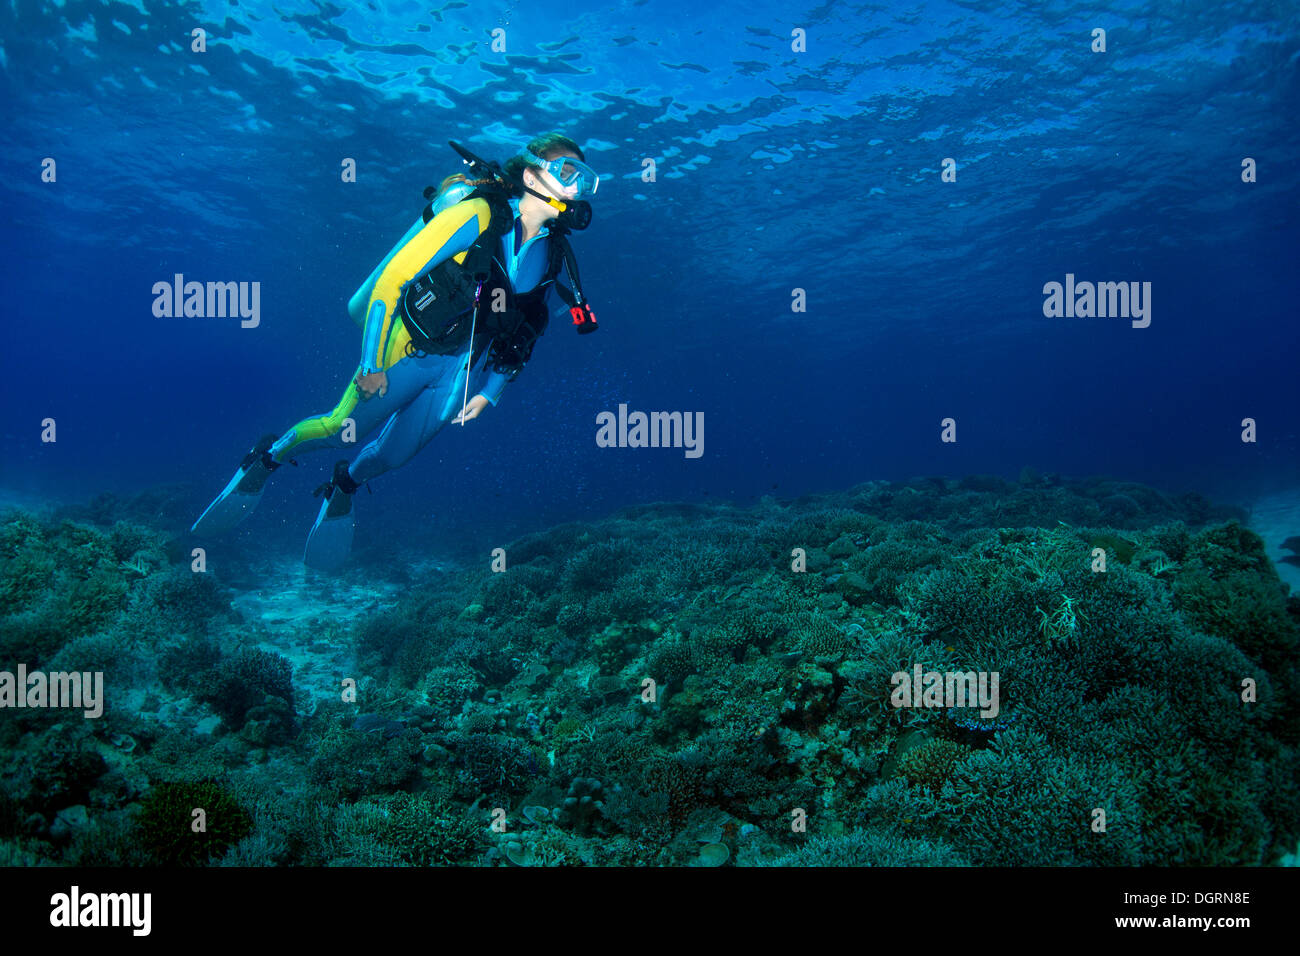 Scuba diver at a coral reef, South China Sea, Mulaong, -, Mimaropa, Philippines - Stock Image